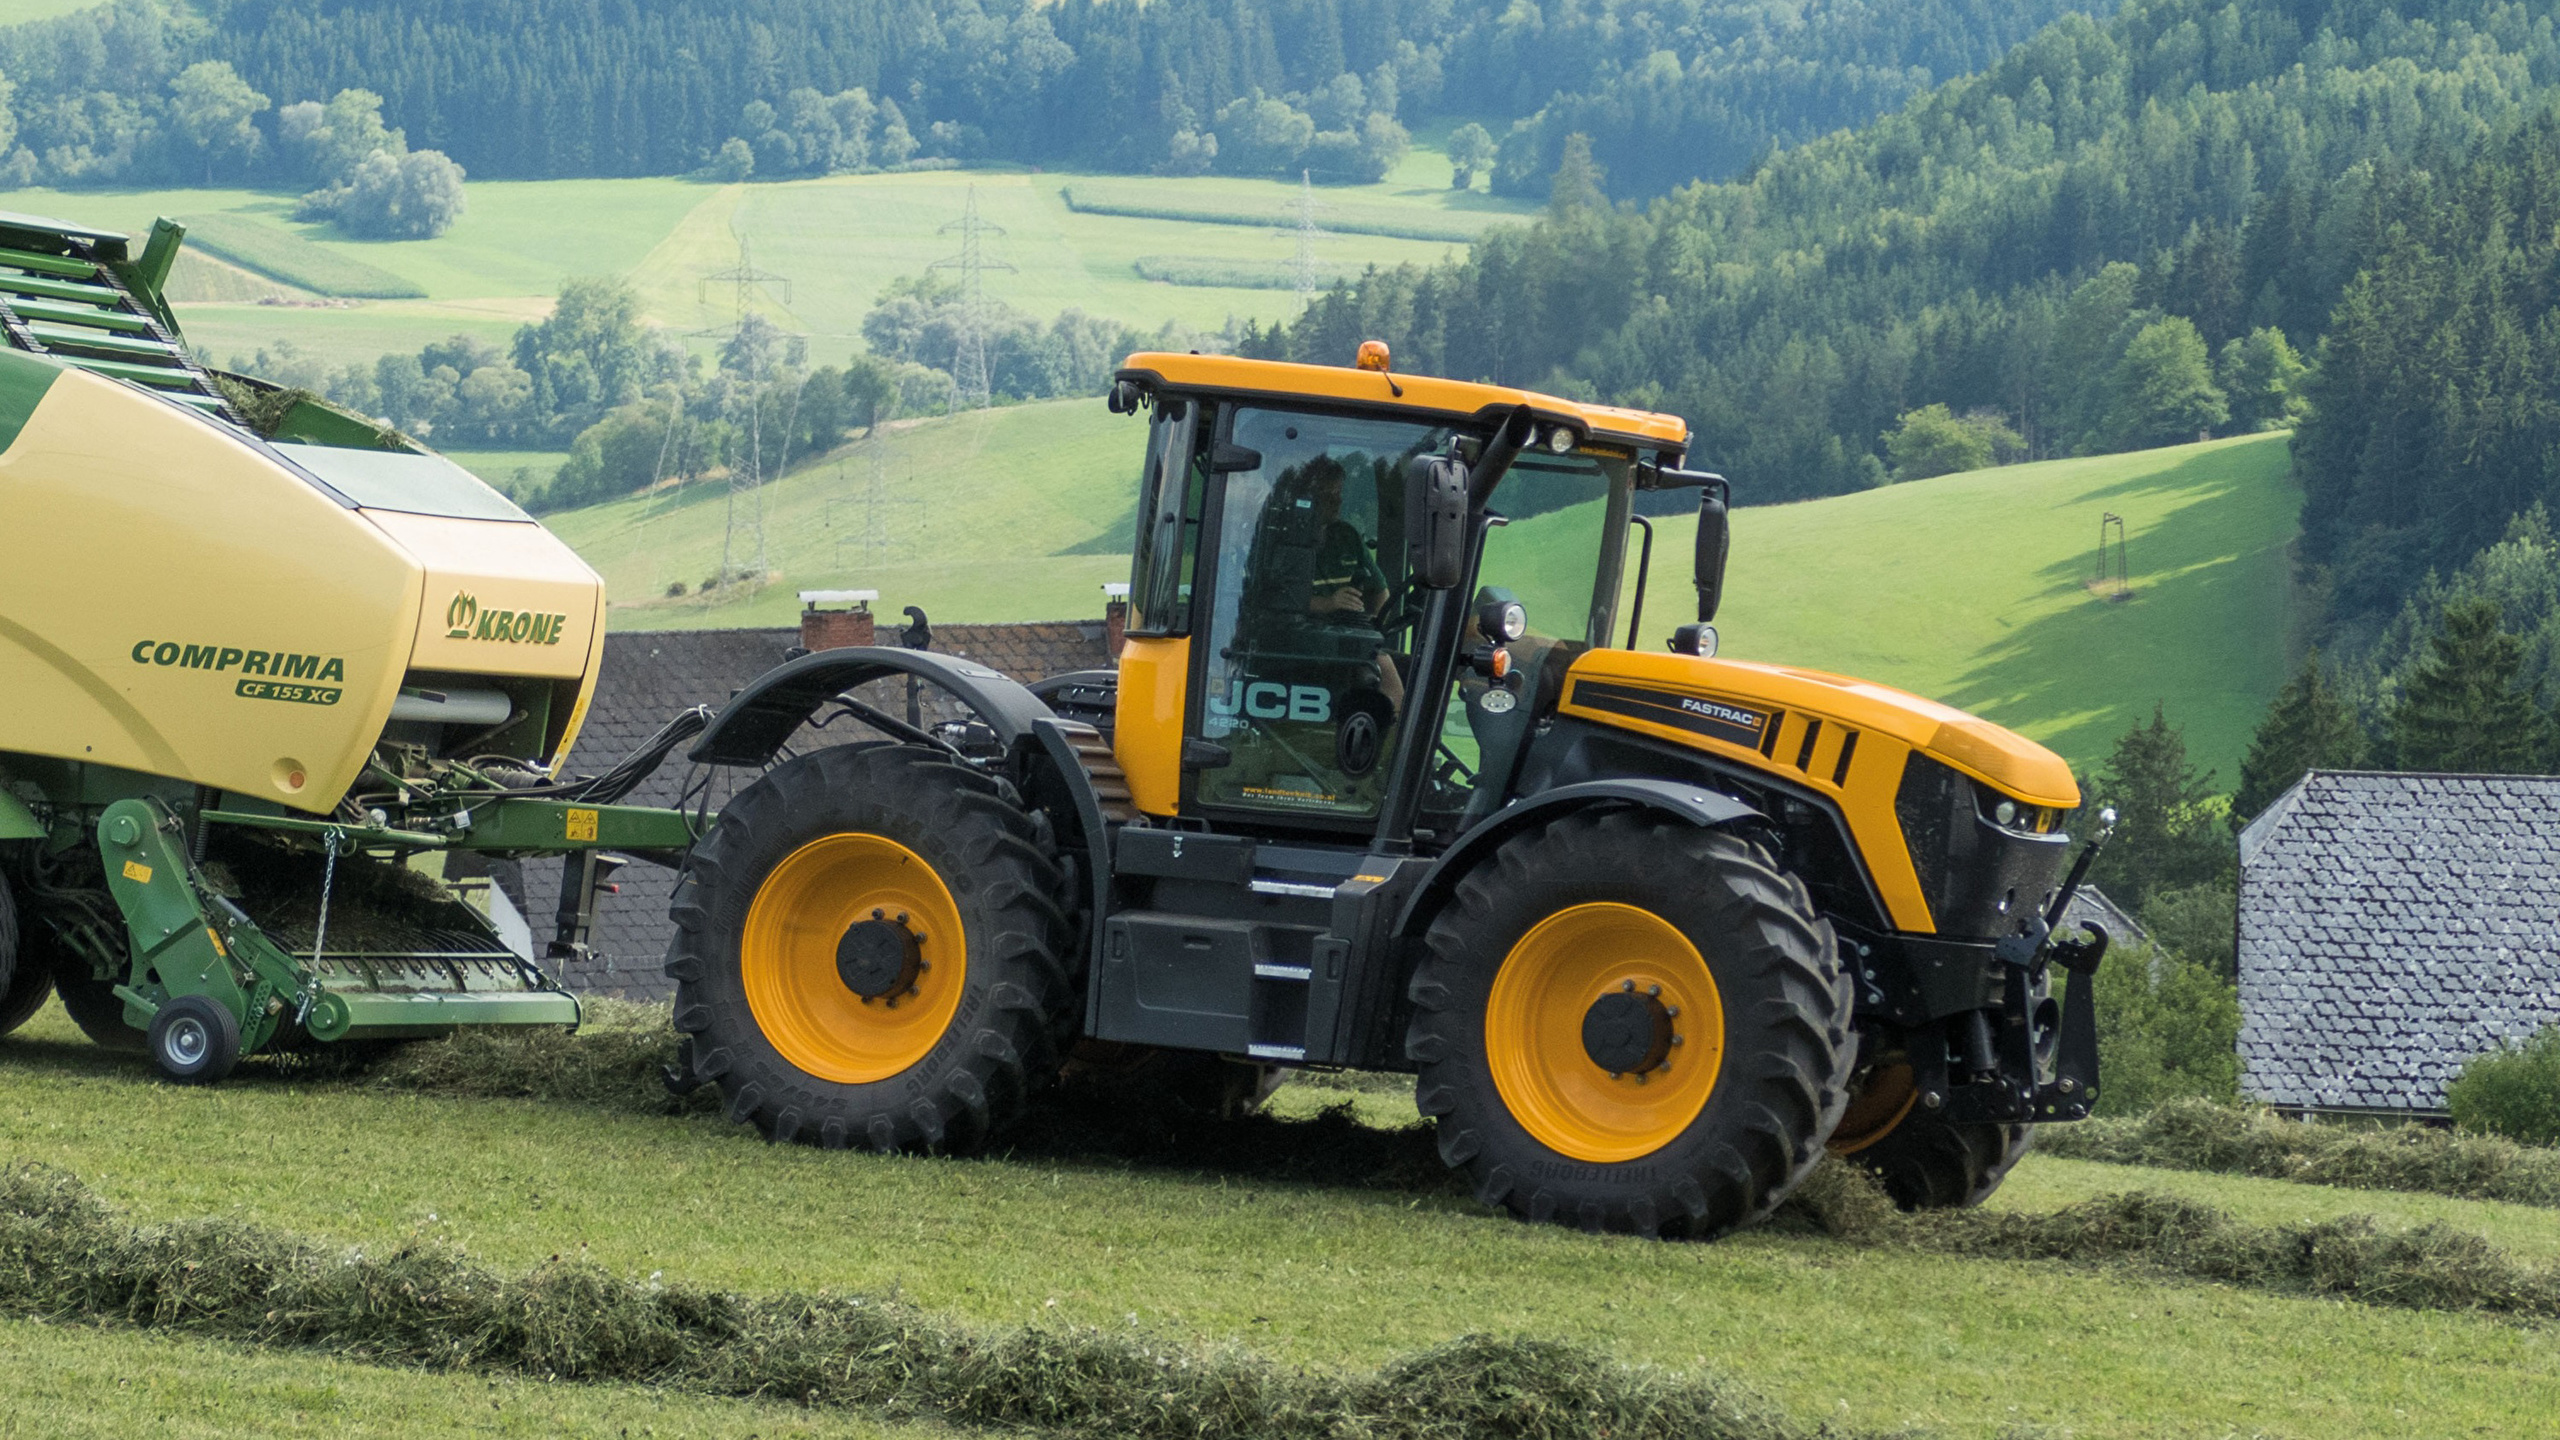 Wallpaper Agricultural machinery tractors 2014 18 JCB 2560x1440 2560x1440